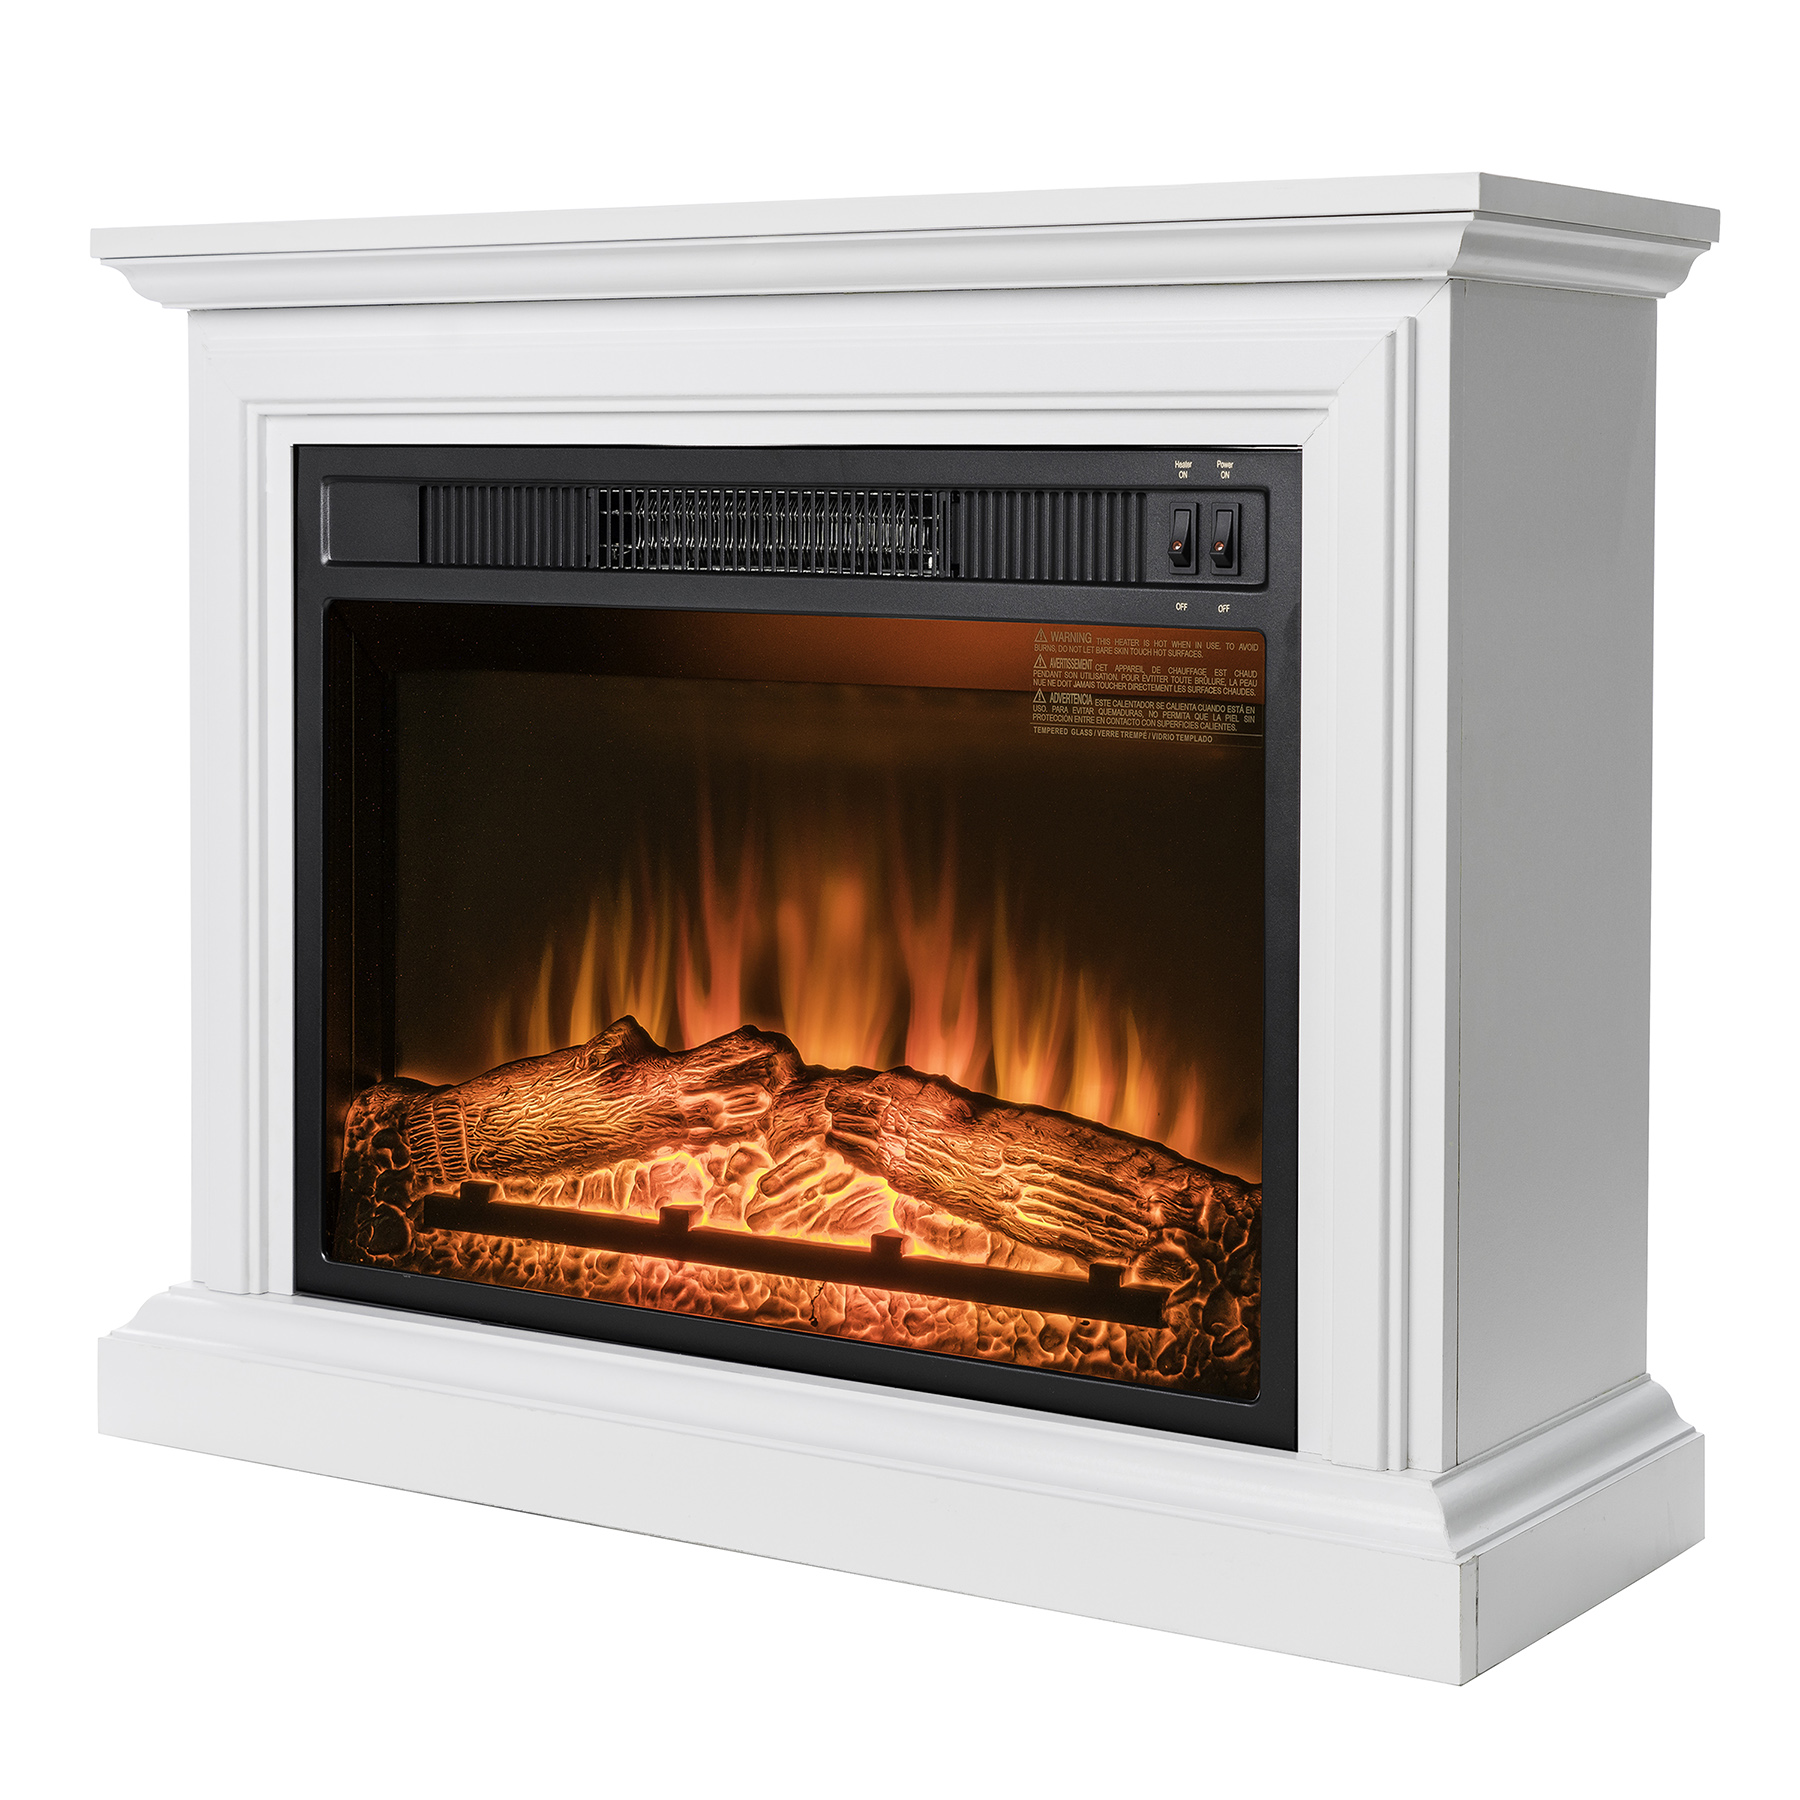 "AKDY FP0090 32"" Electric Fireplace Freestanding White Wooden Mantel Firebox Heater 3D Flame w/ Logs"